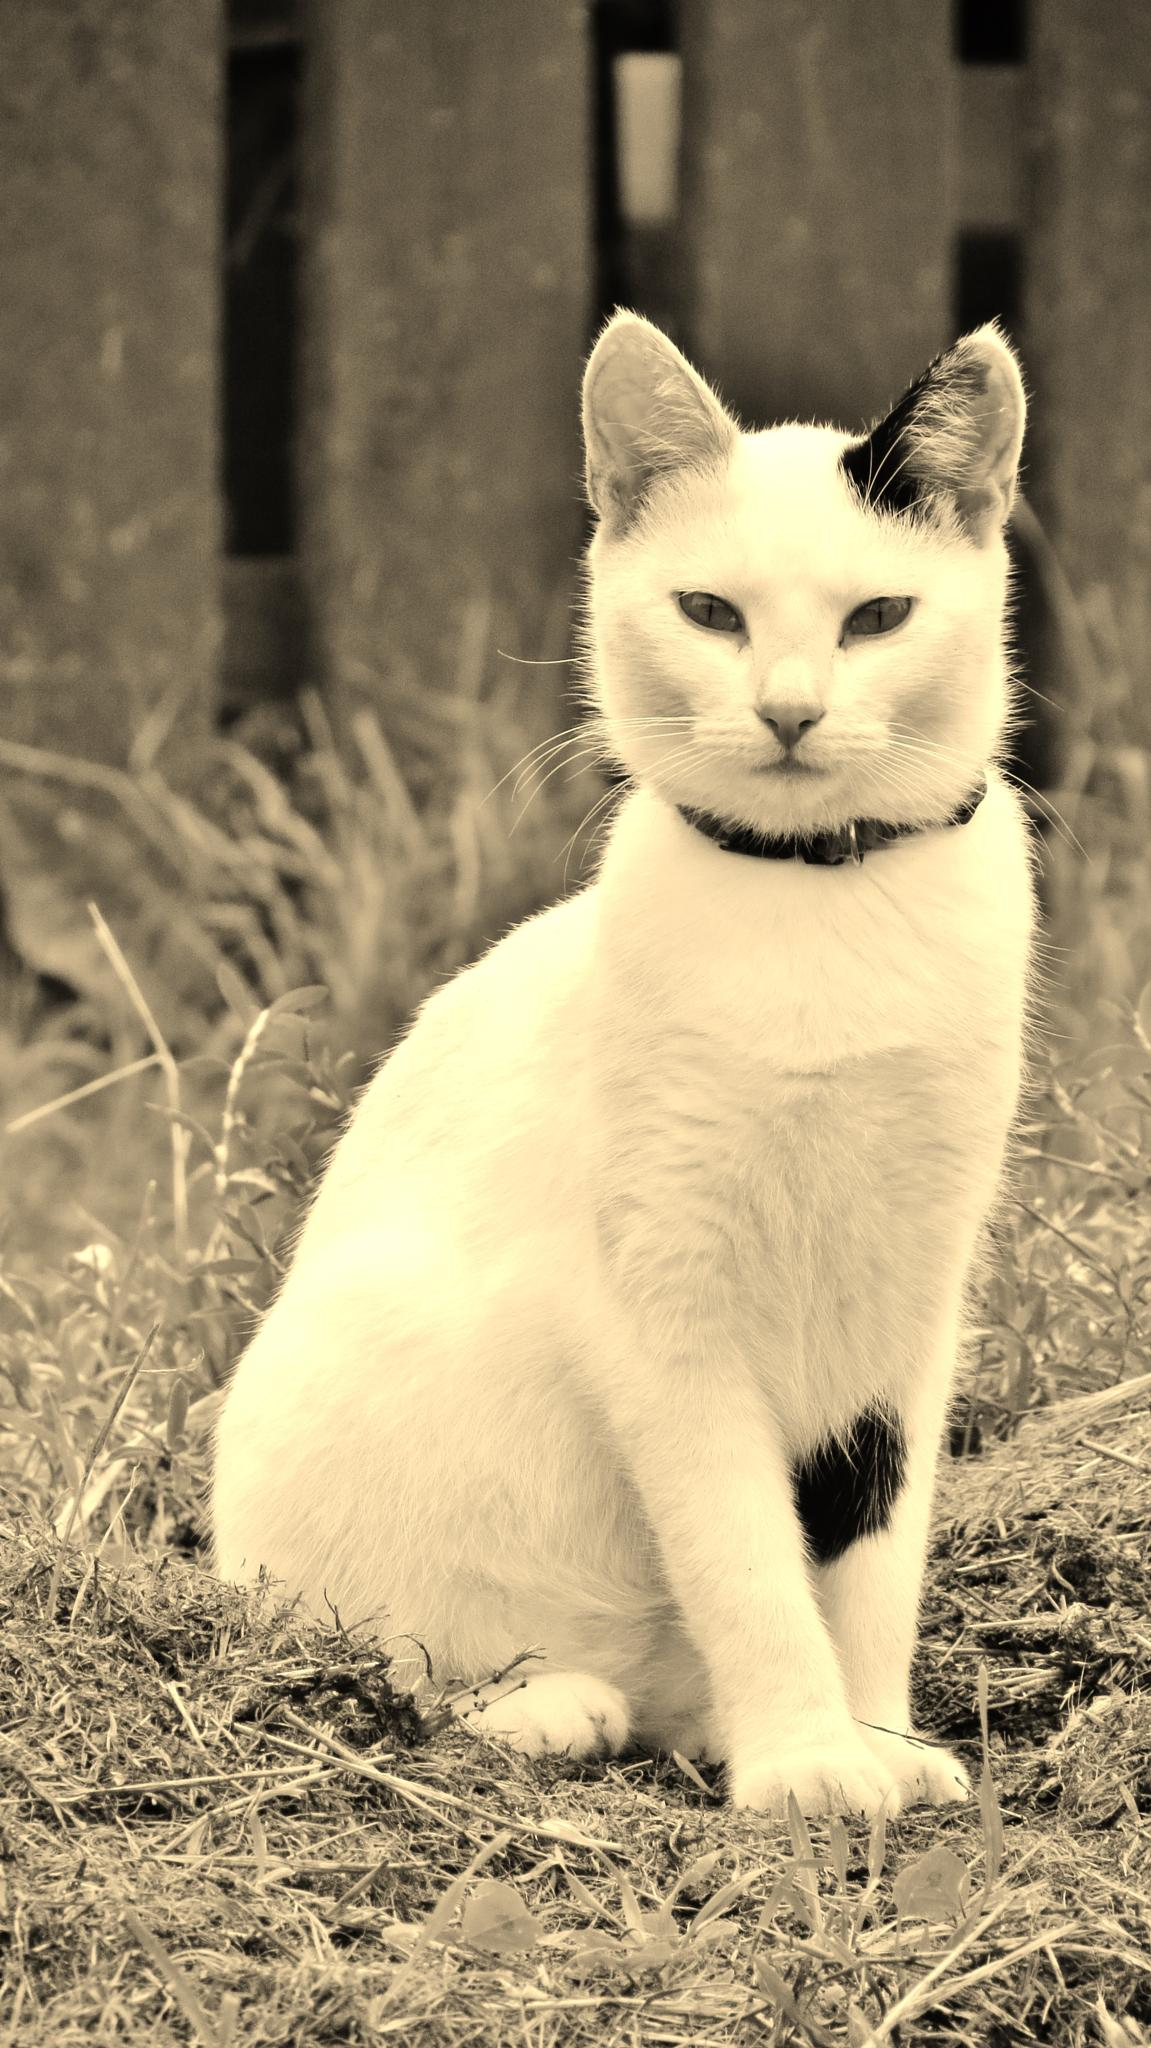 Black and White Cat by Jonathan Merritt